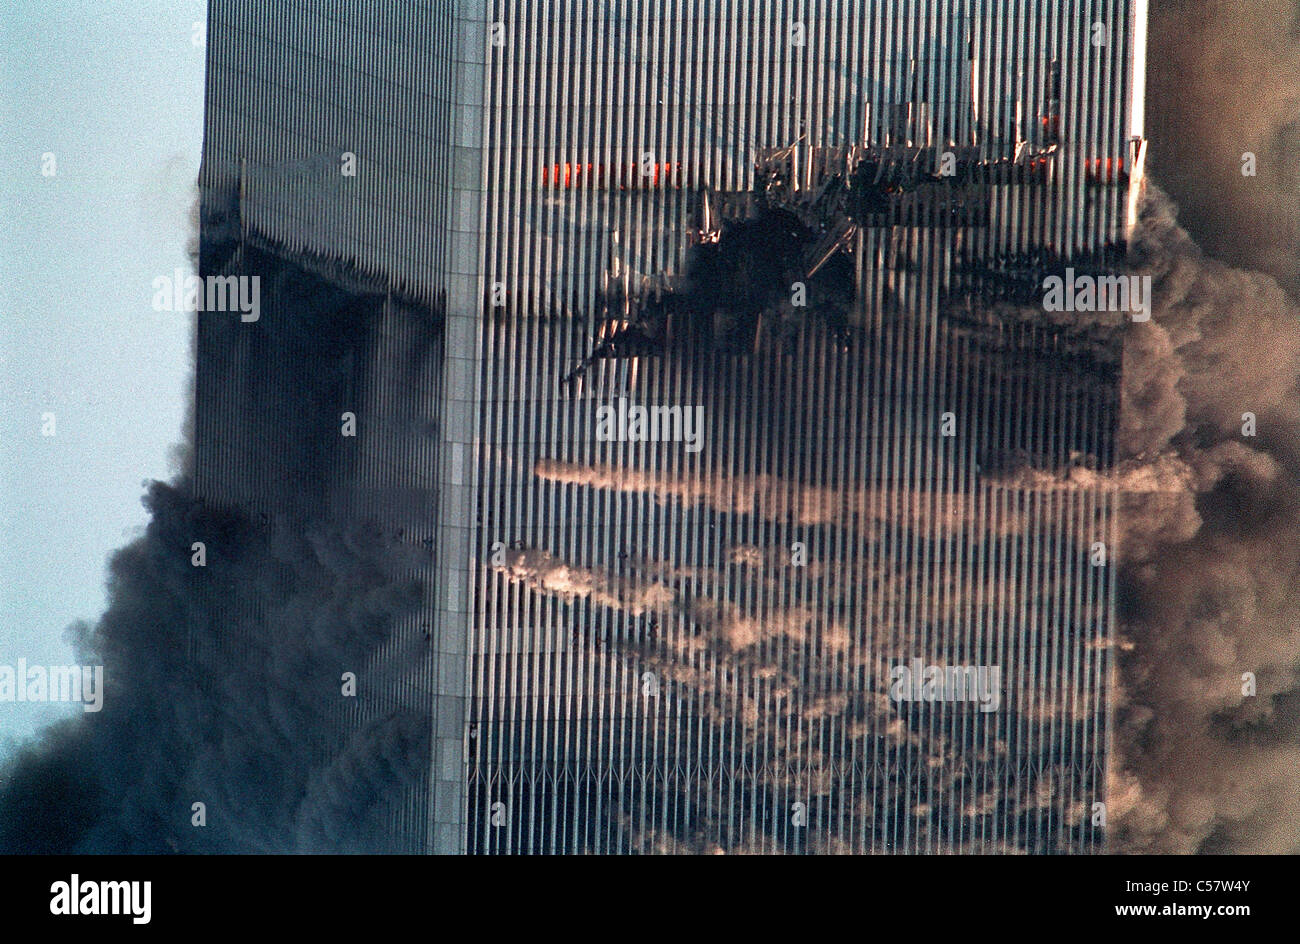 World Trade Center, New York City terrorist attack, September 11, 2001.